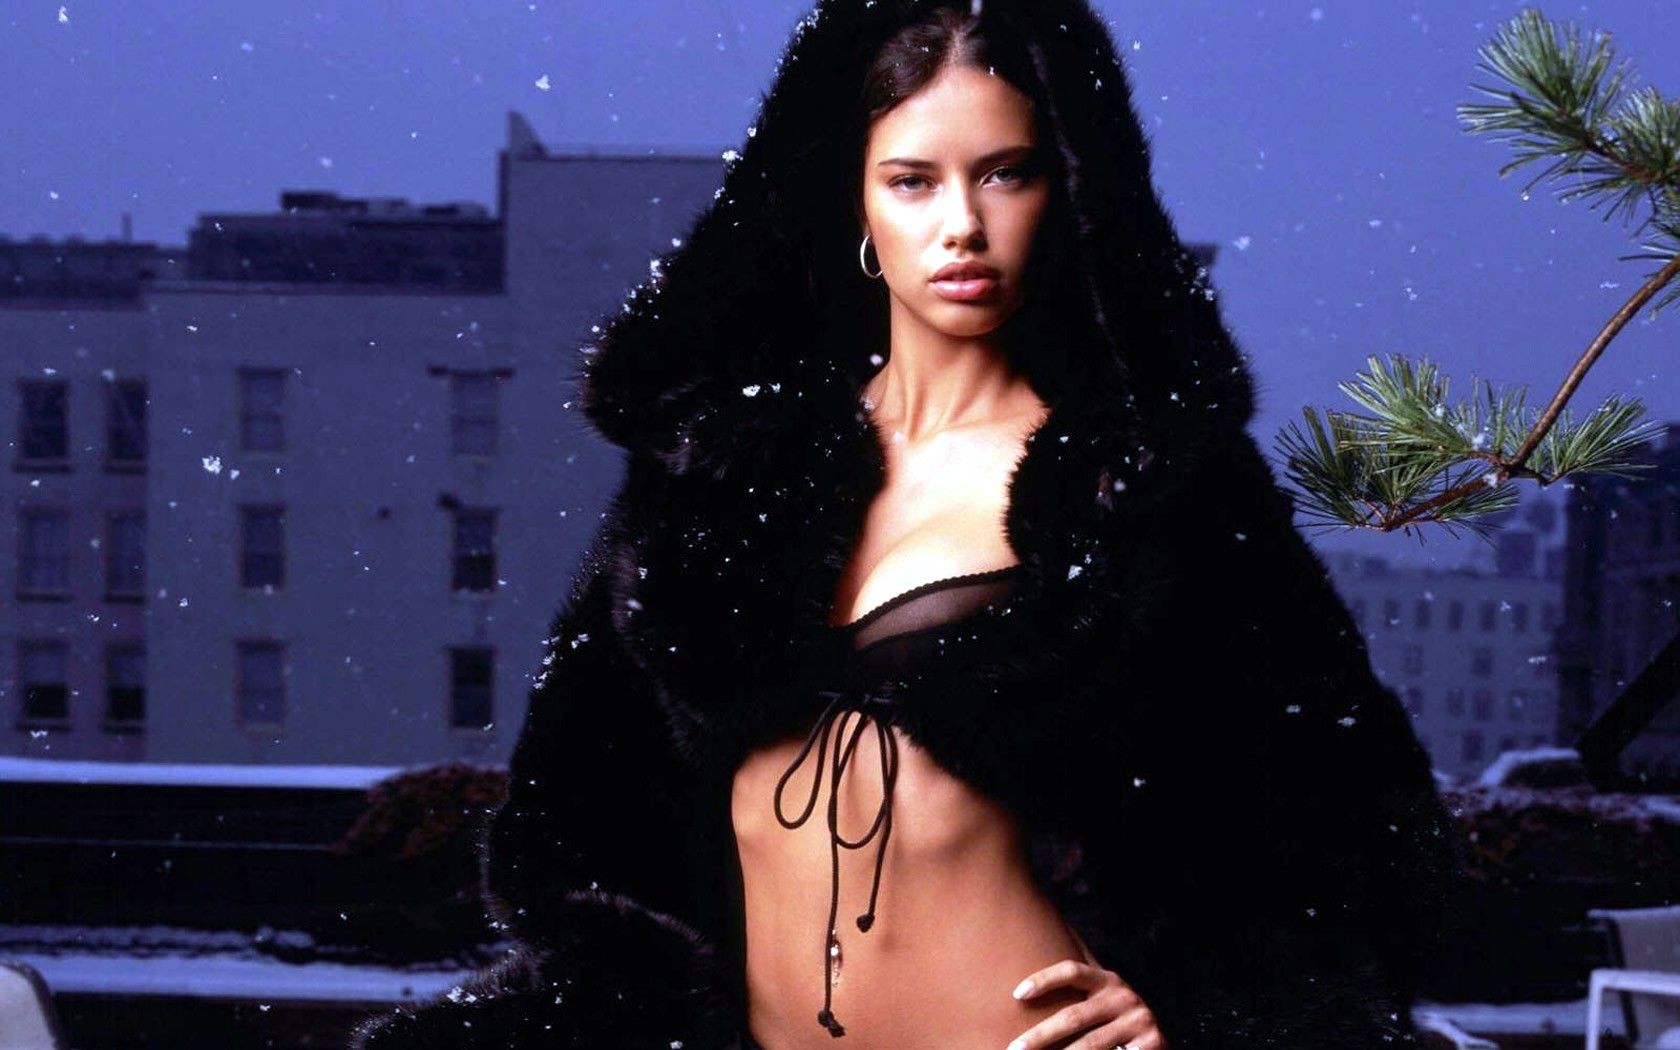 woman models adriana lima HD Wallpaper